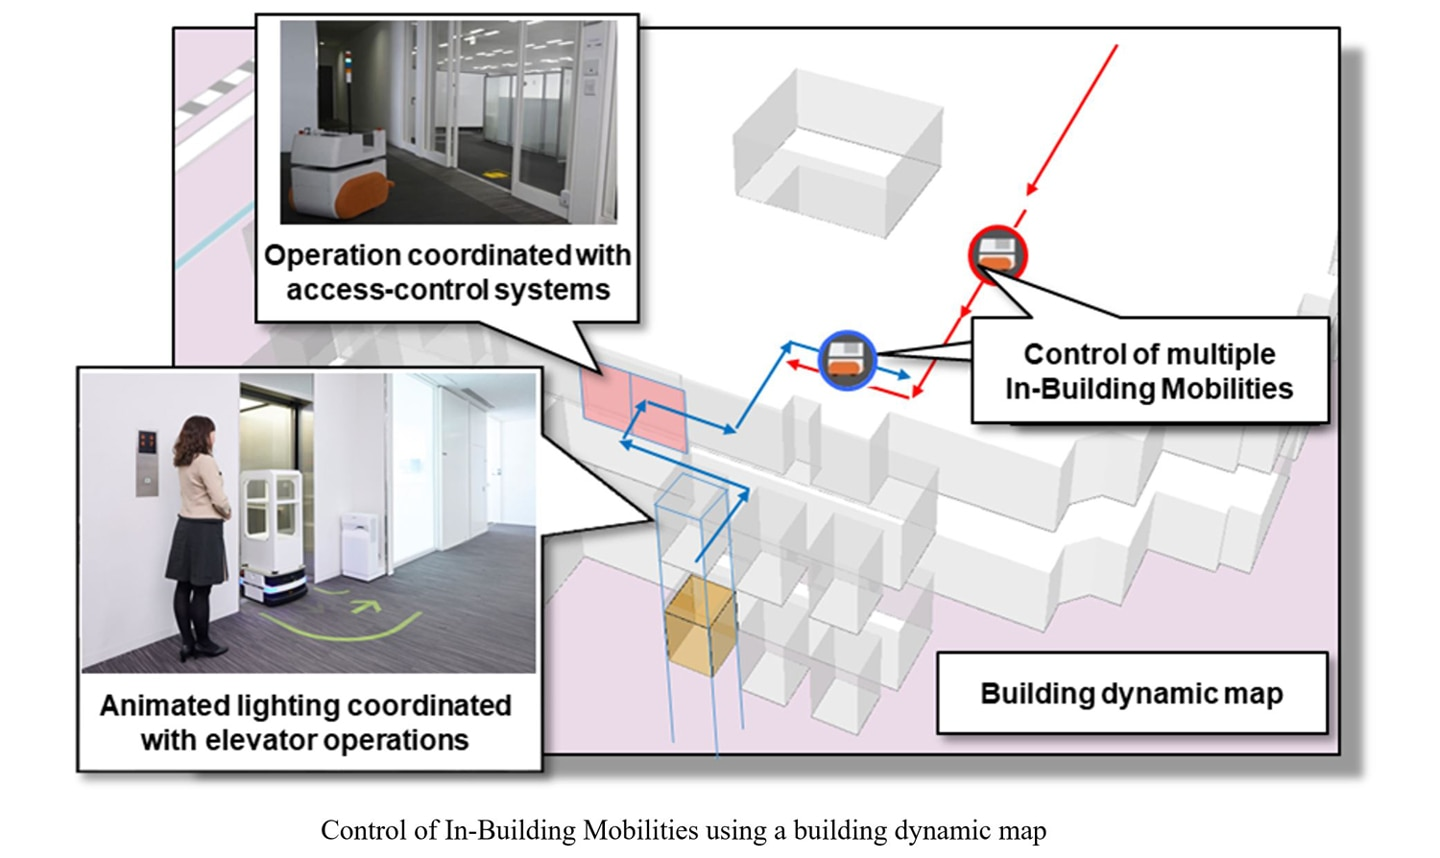 Control of In-Building Mobilities using a building dynamic map